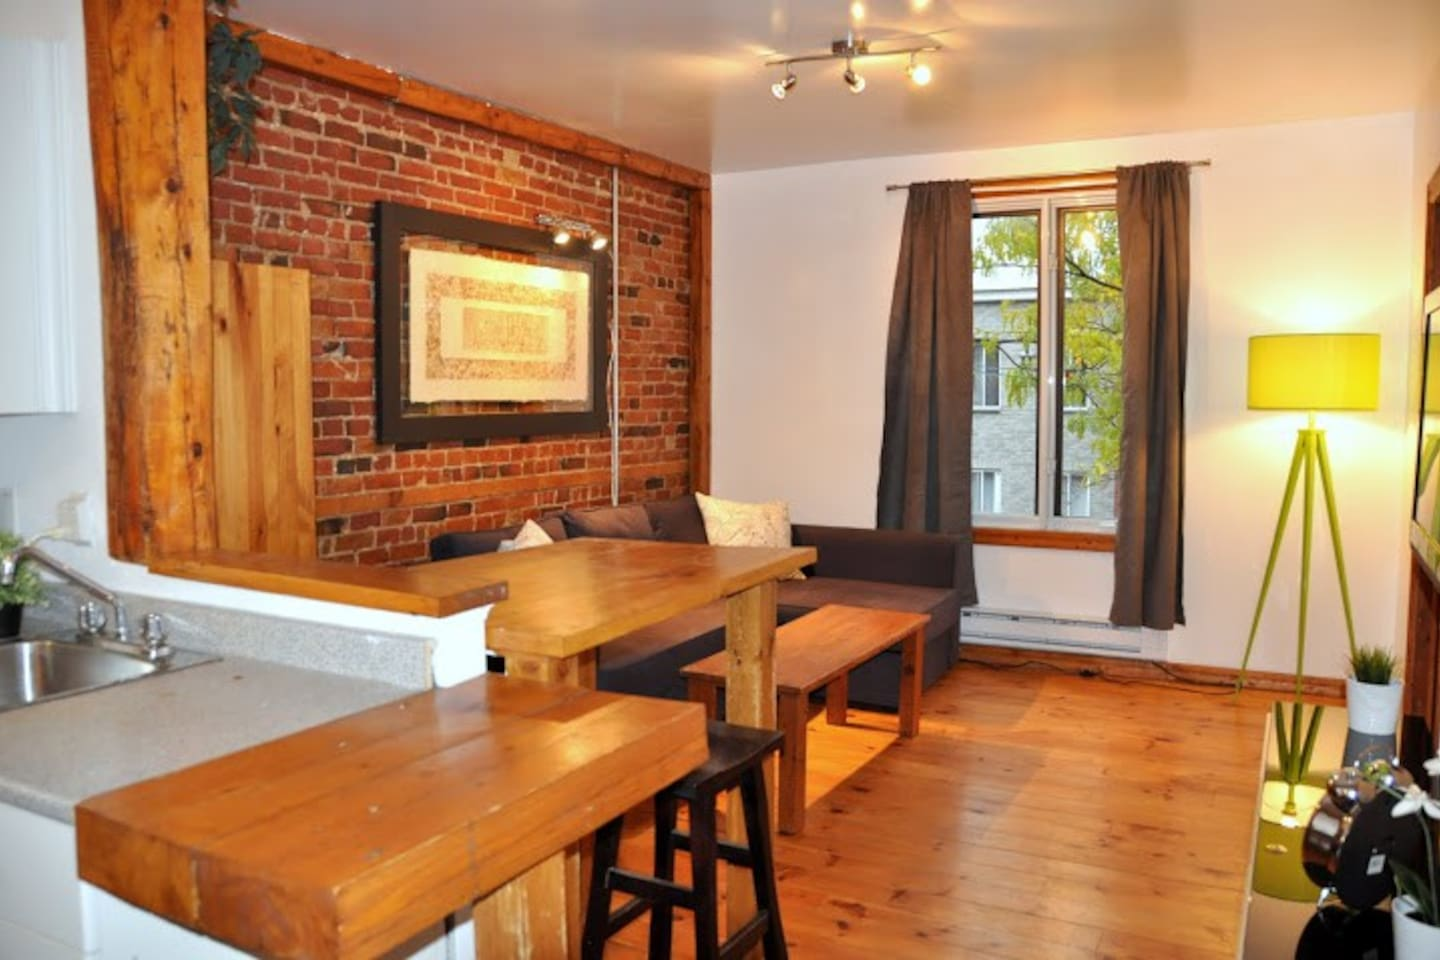 ONLY 5-10 minutes from OLD MONTREAL and DOWN-TOWN. Charming, authentic, plenty of light!